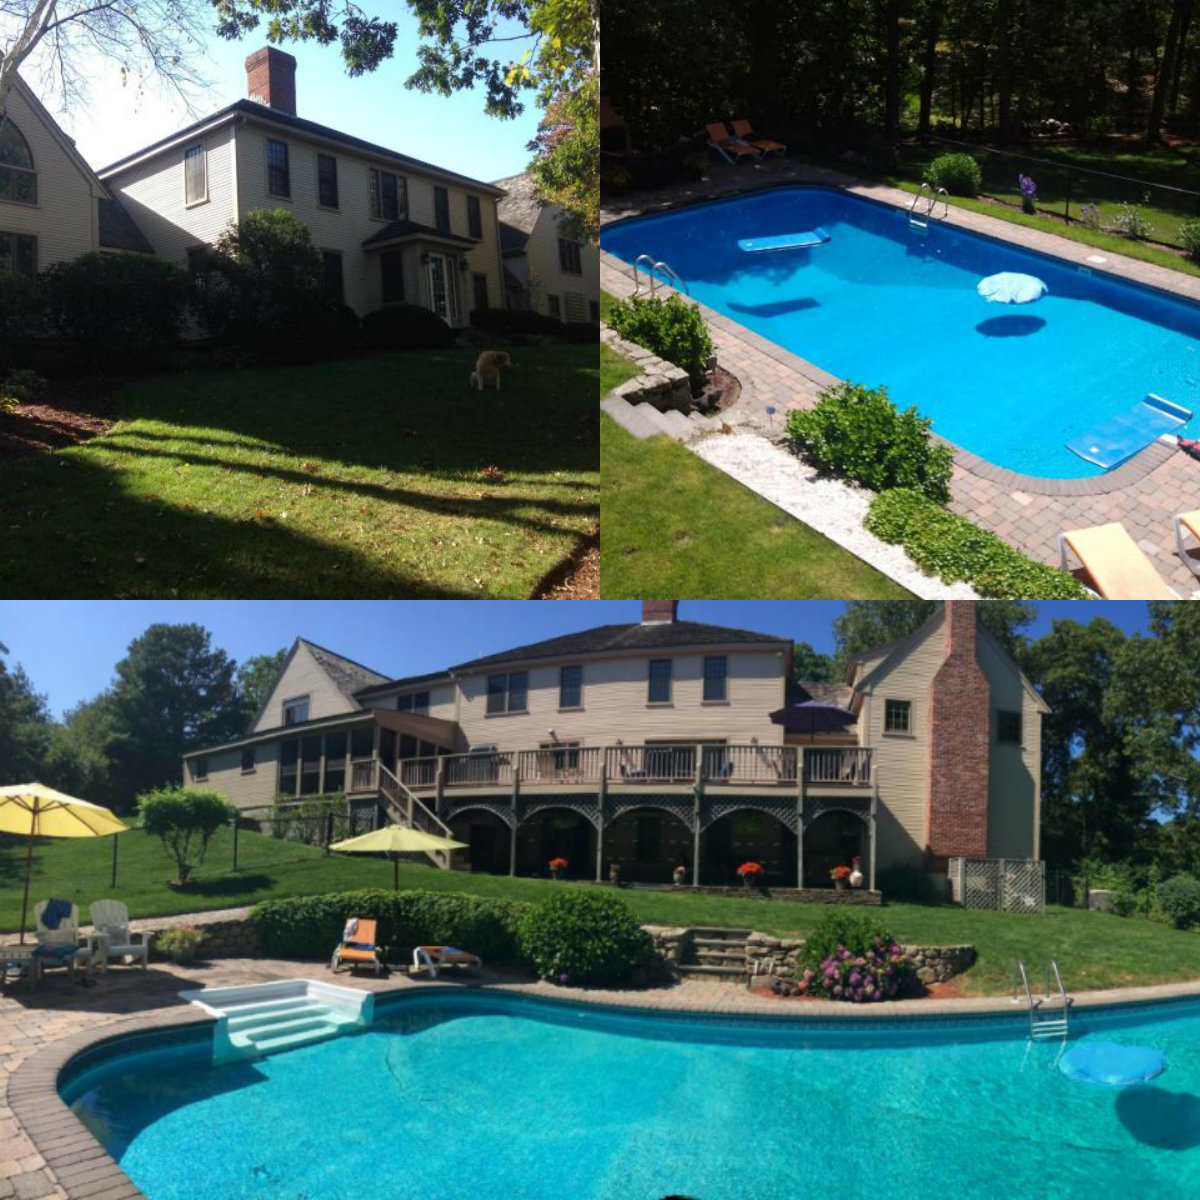 Images of pool at 71 Angela Way in Barnstable Cape Cod MA